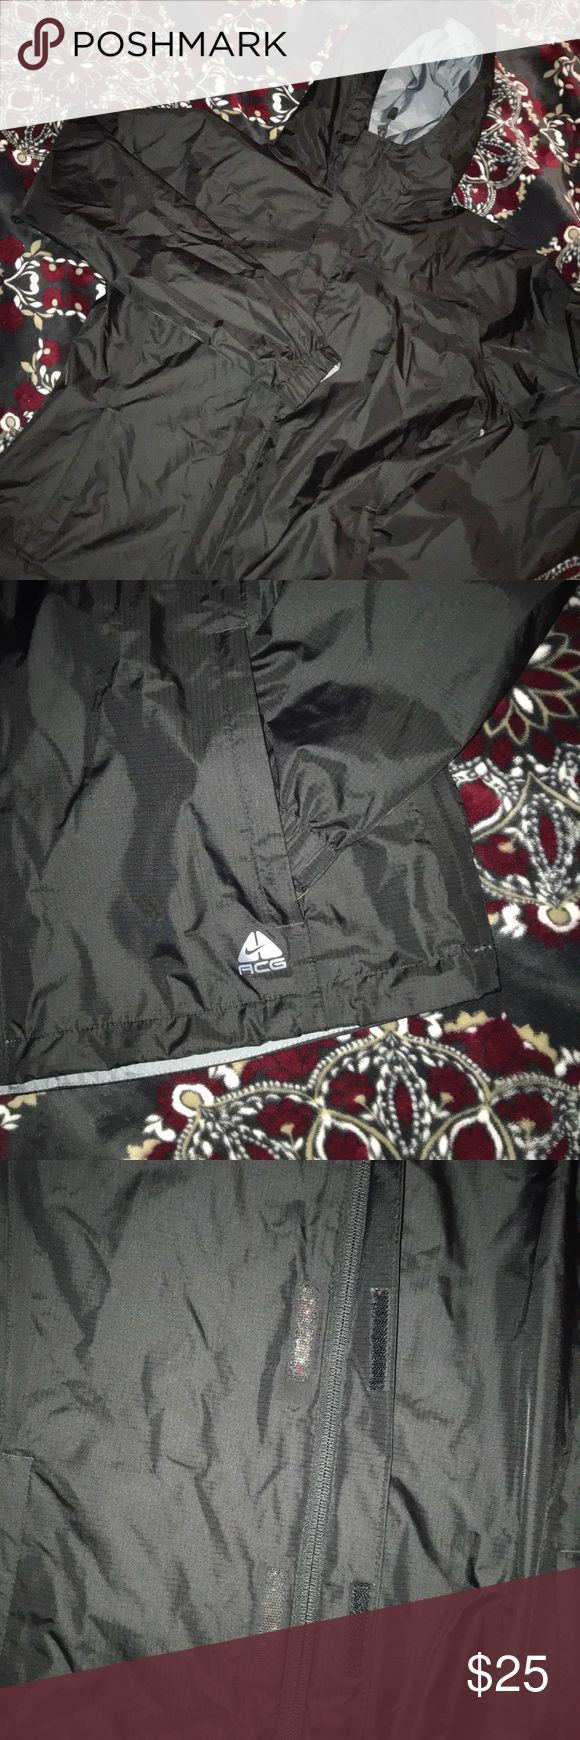 Women's Black Nike ACG Jacket Sz Medium Great condition. There is lint caught in the Velcro. Size Medium Full Zip Nike ACG (All condition gear) Jacket. Women's. Nike ACG Jackets & Coats